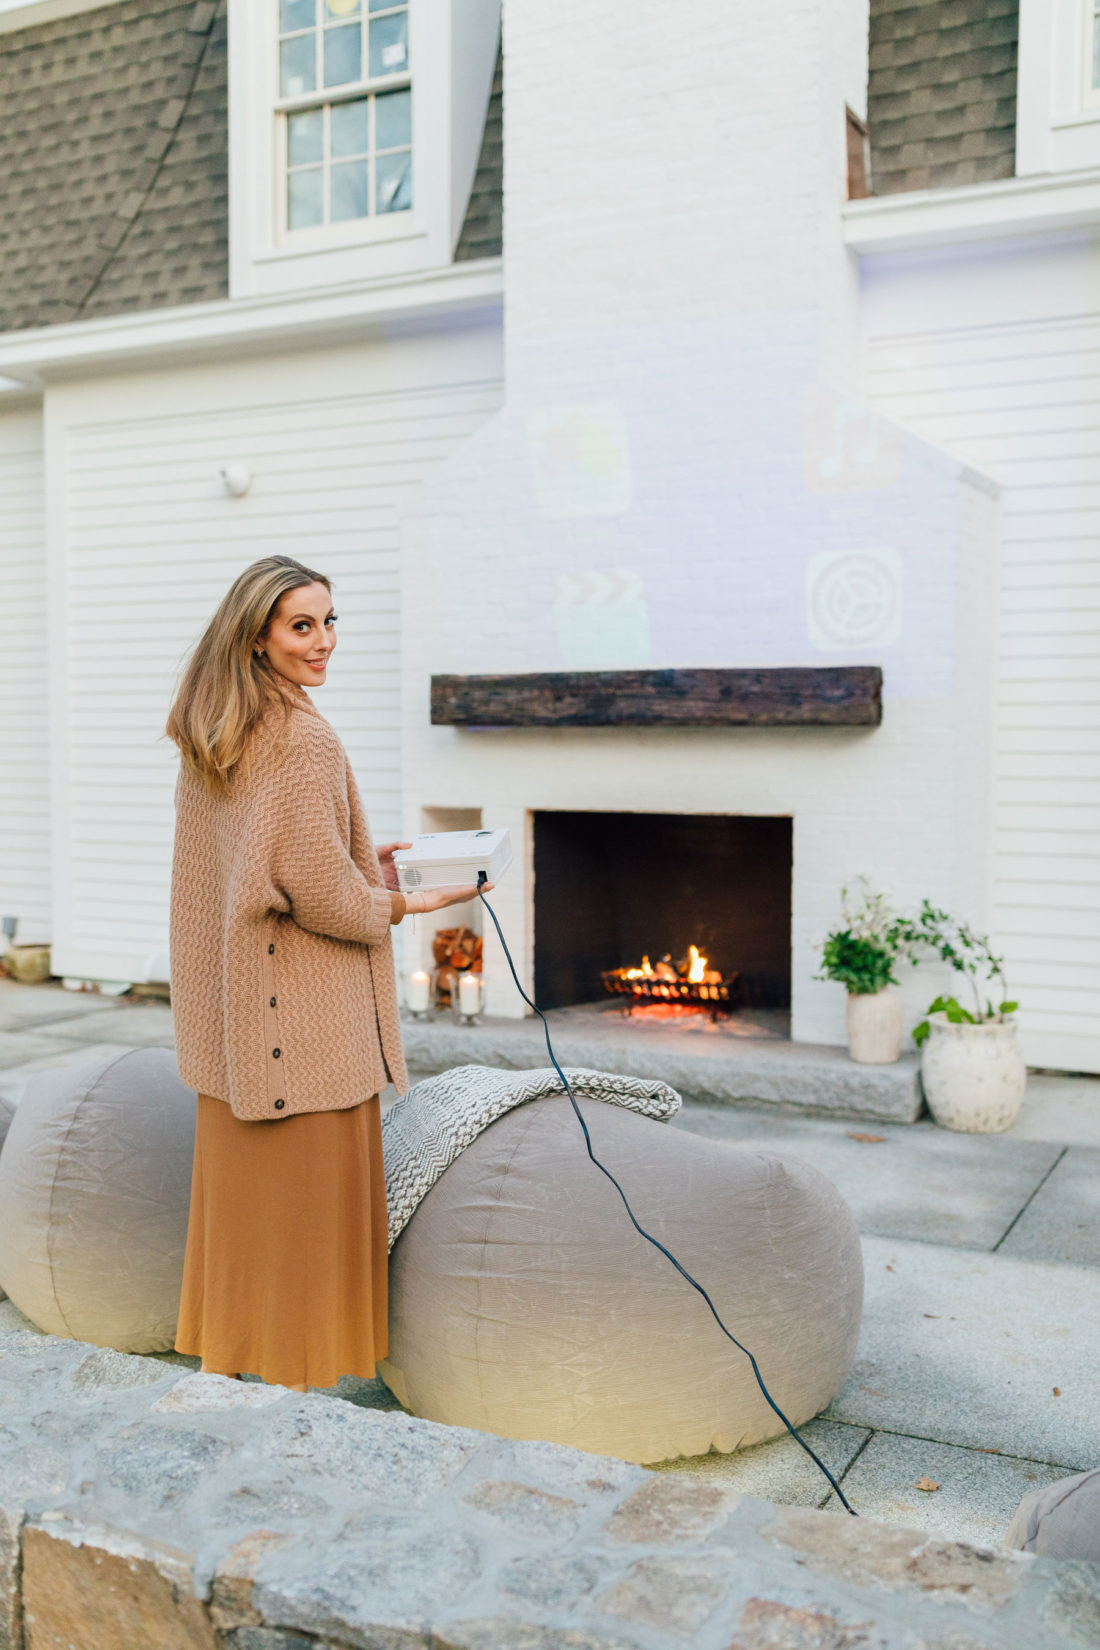 Eva Amurri holds a portable projector for an outdoor movie night on her back patio at her home in Connecticut